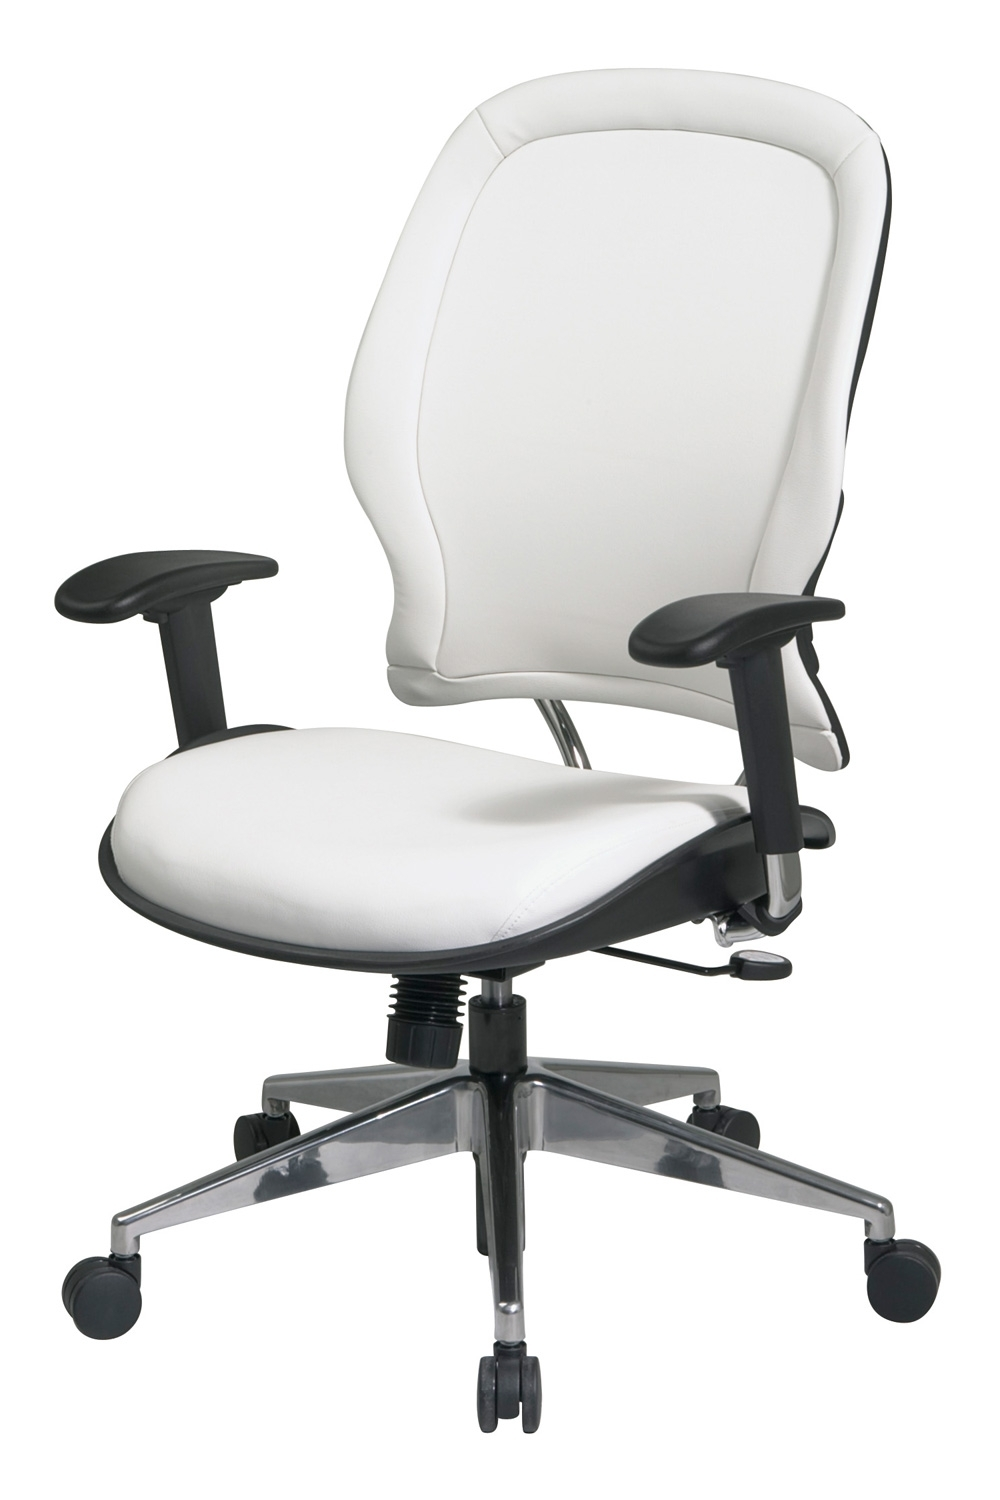 Executive Office Chairs With Back Support In 2019 Best Ergonomic White Office Chair Ideas – Liltigertoo (Gallery 14 of 20)